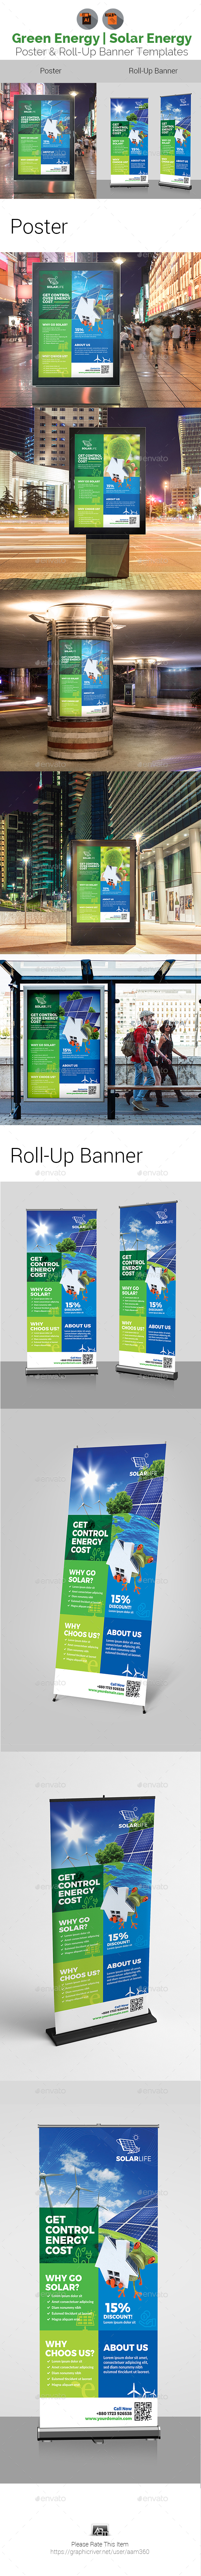 Solar Energy Poster & Roll-Up Banner - Signage Print Templates